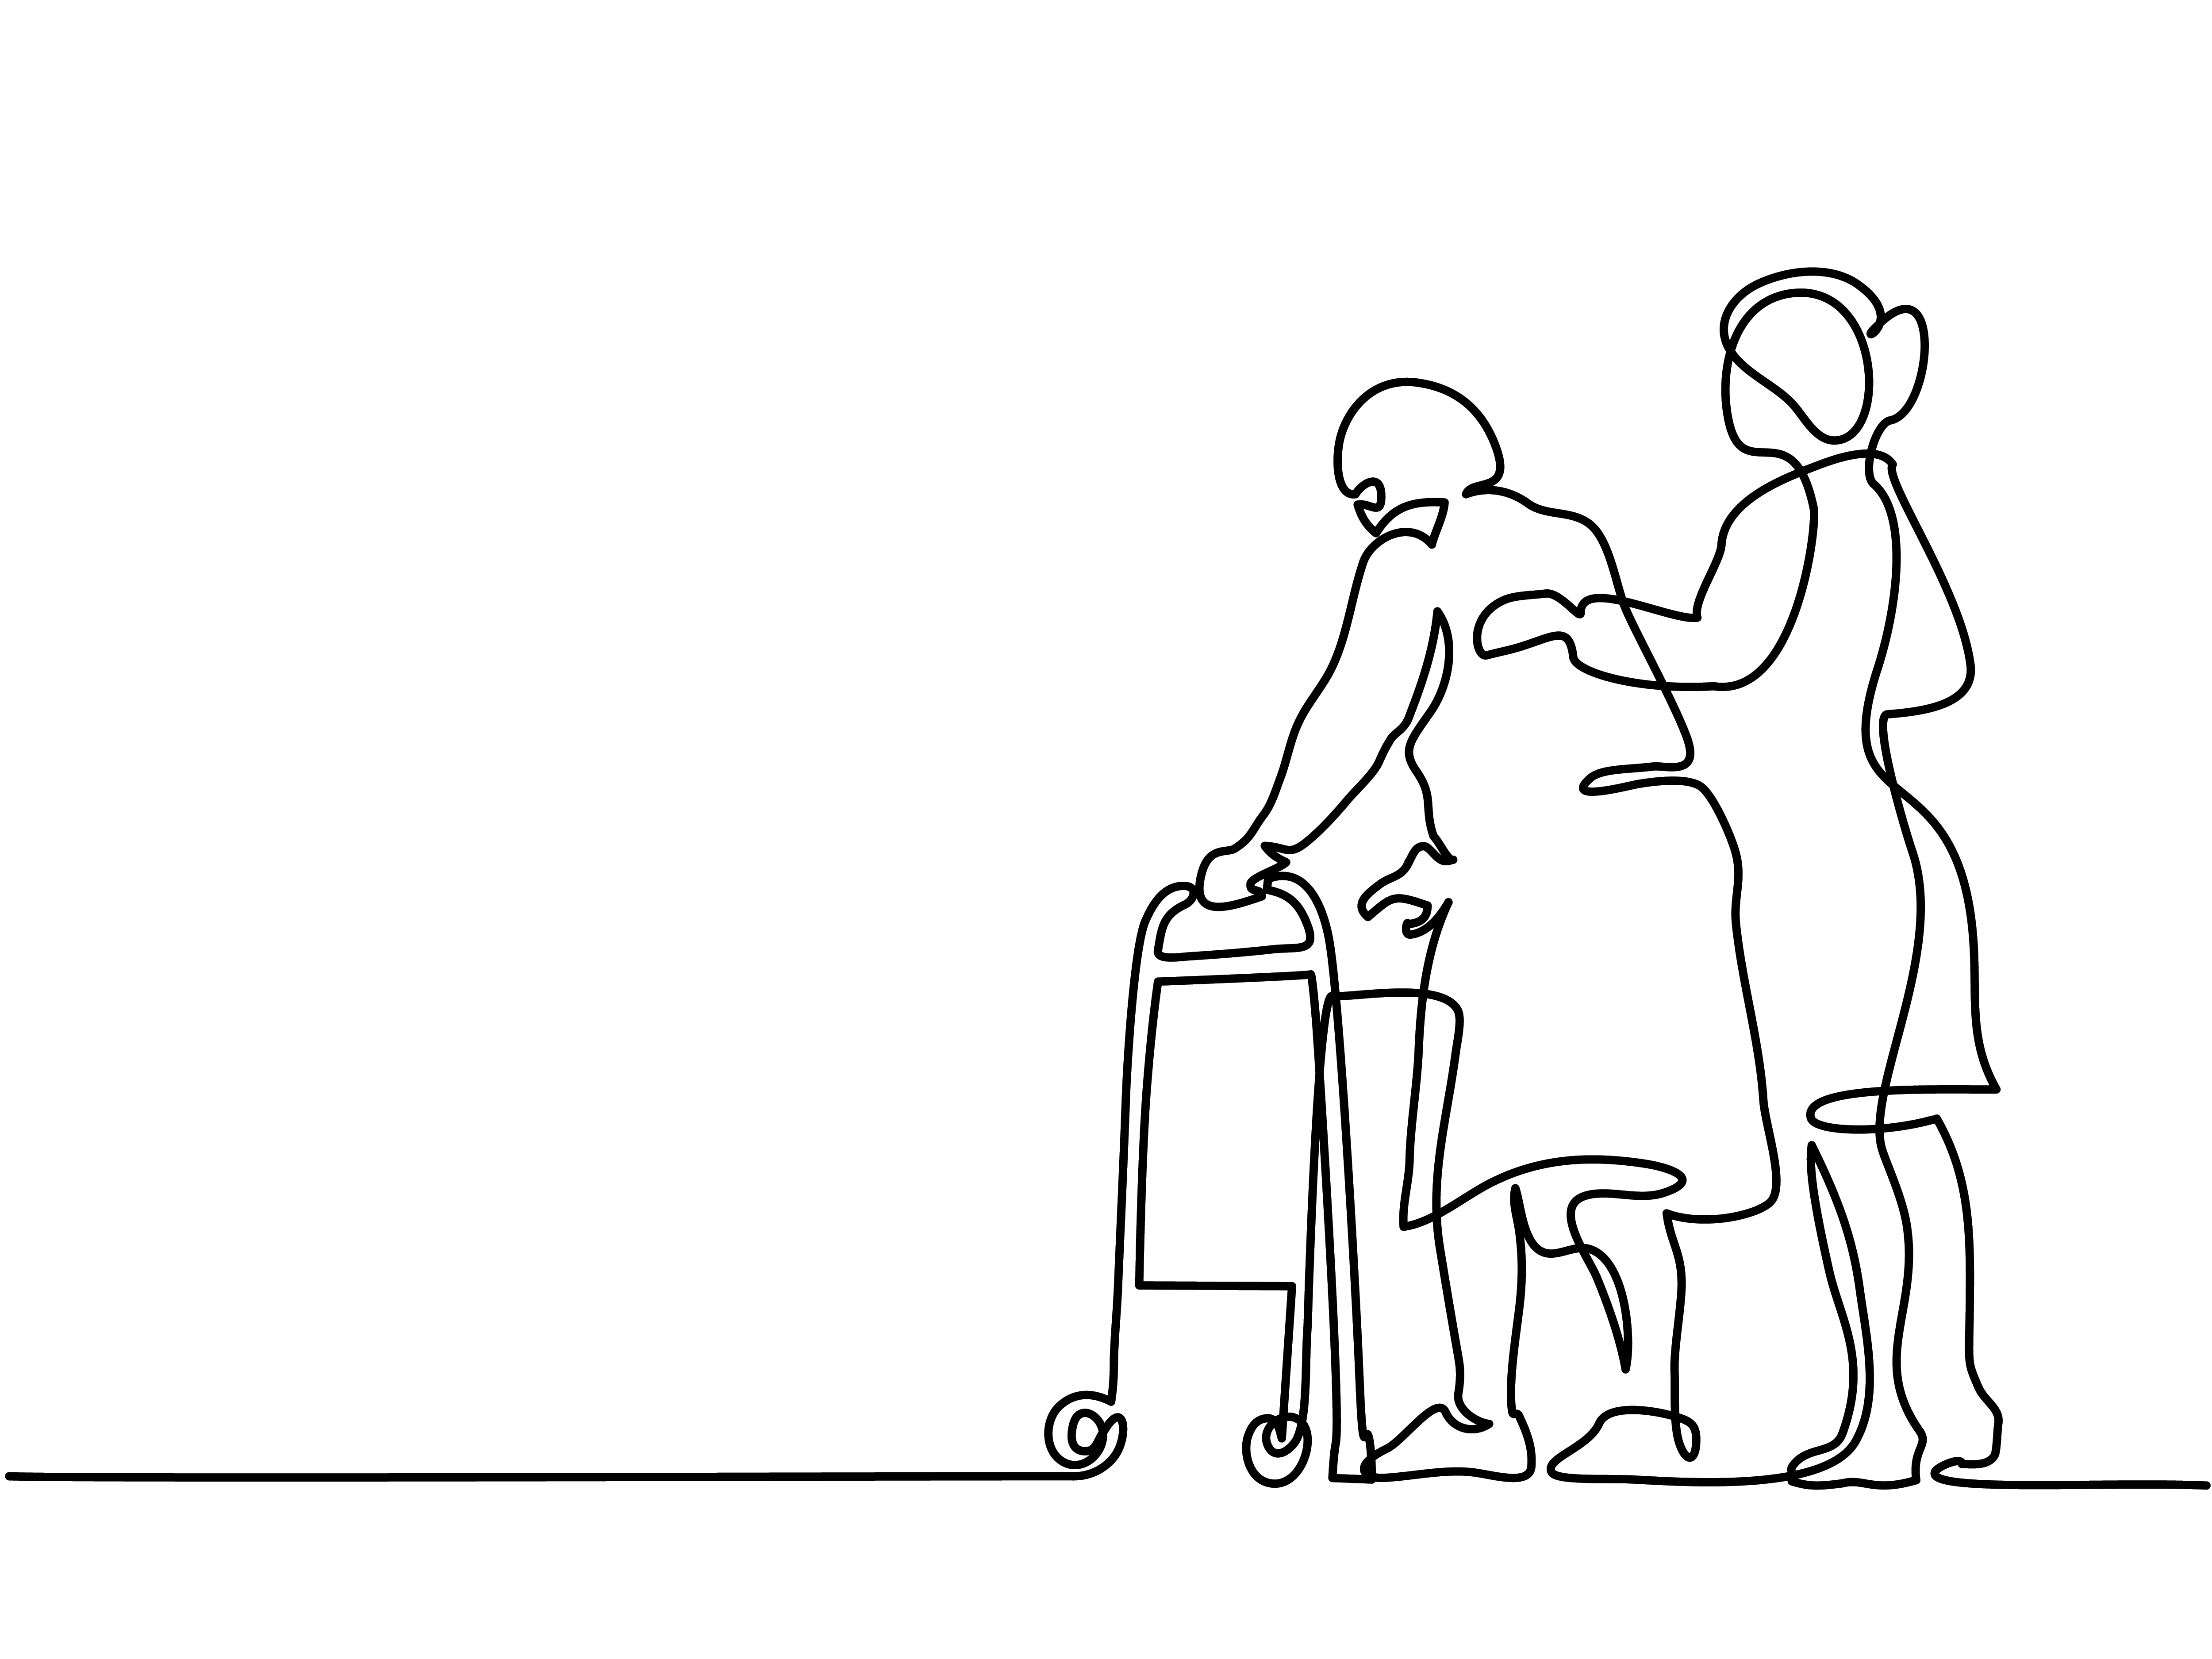 Line drawing of two people that is composed of one single line